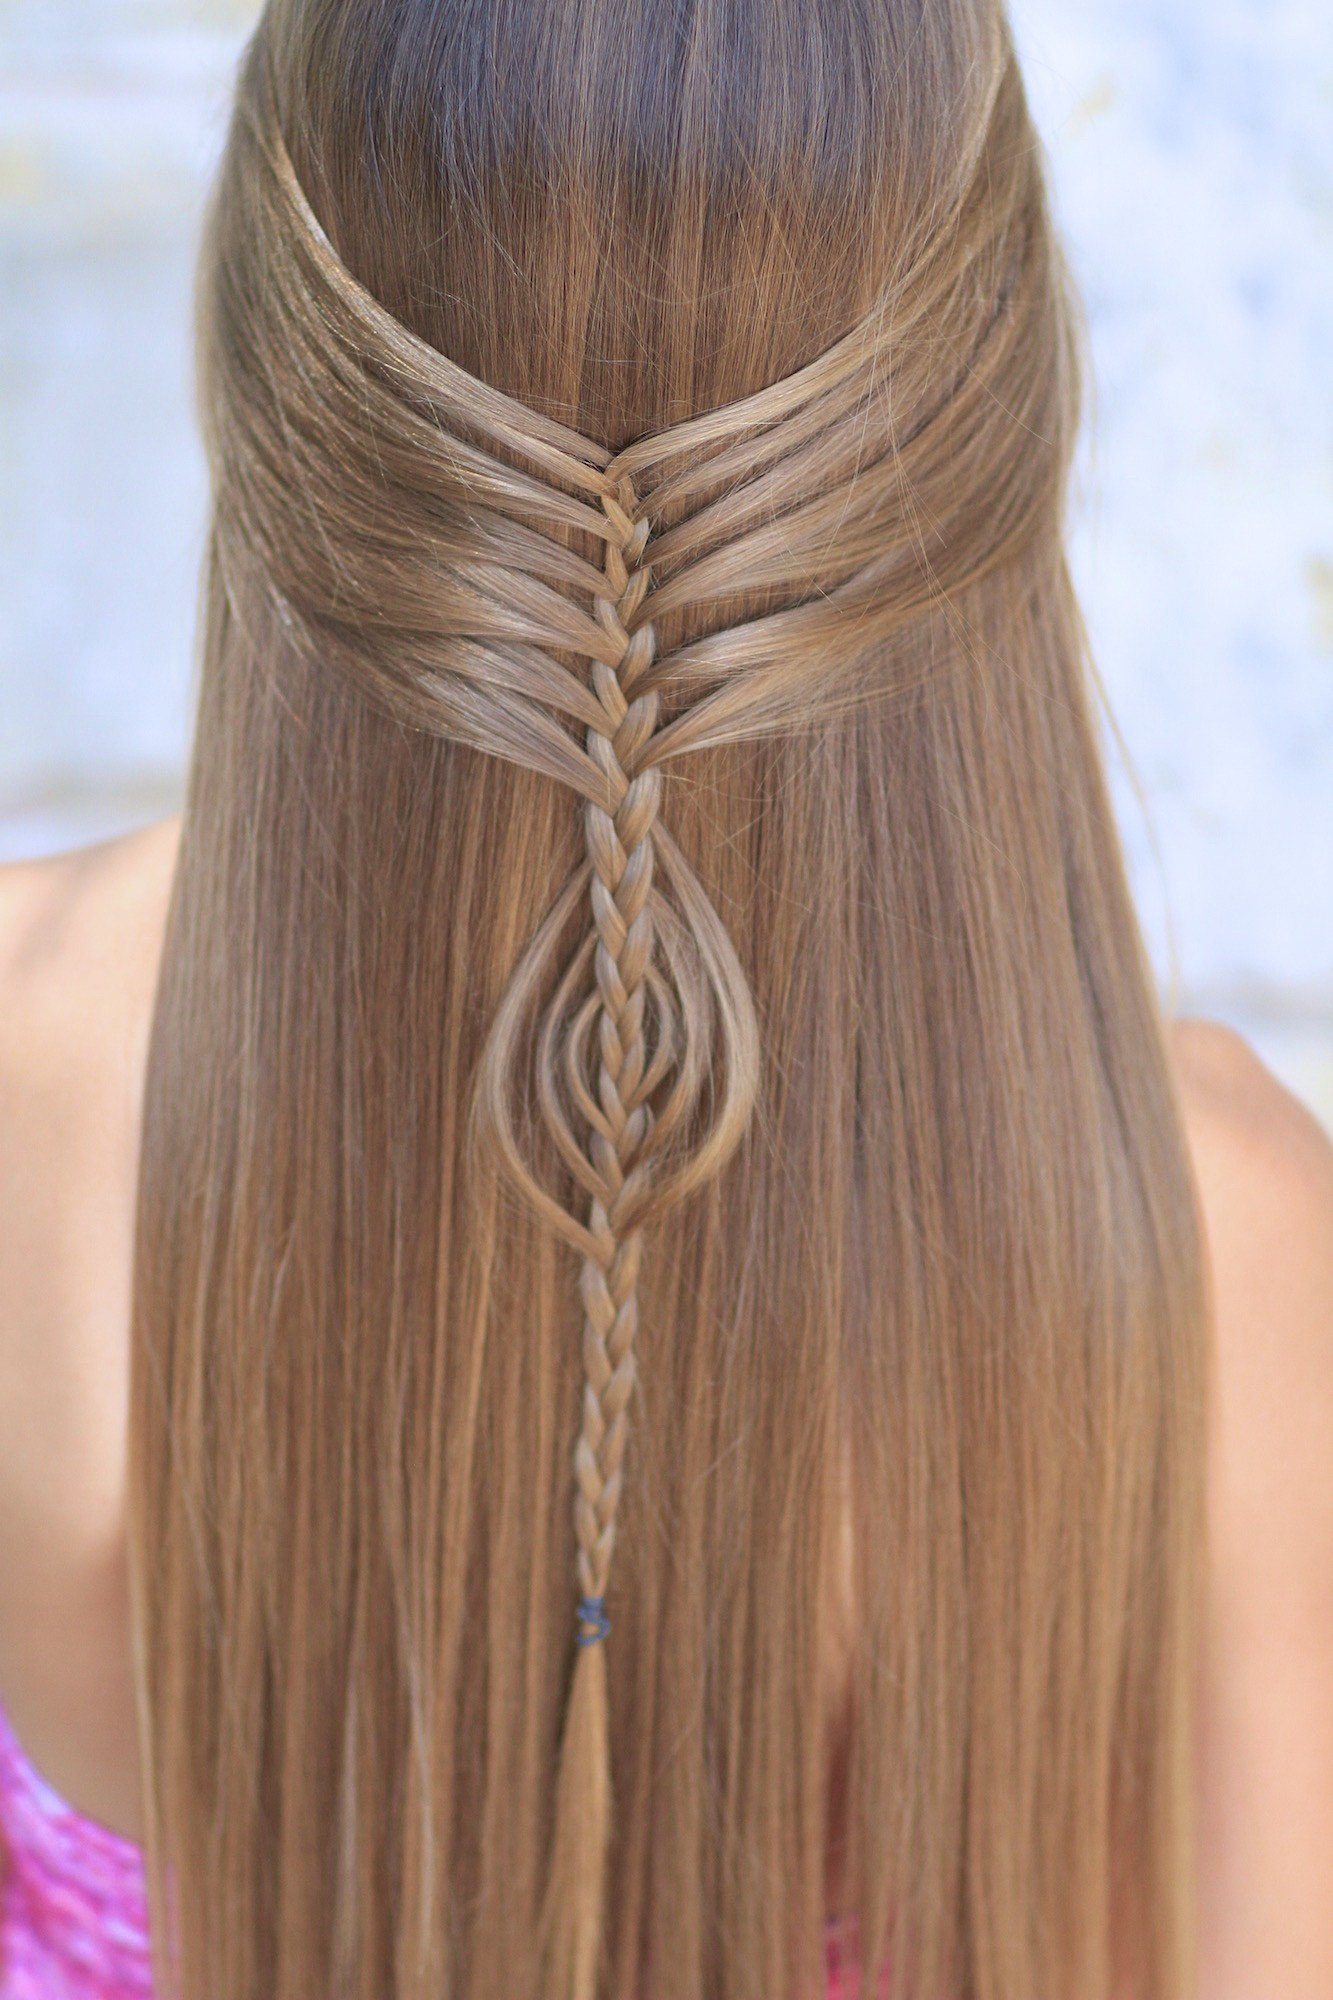 New Mermaid Braid Combo Cute Girls Hairstyles Ideas With Pictures